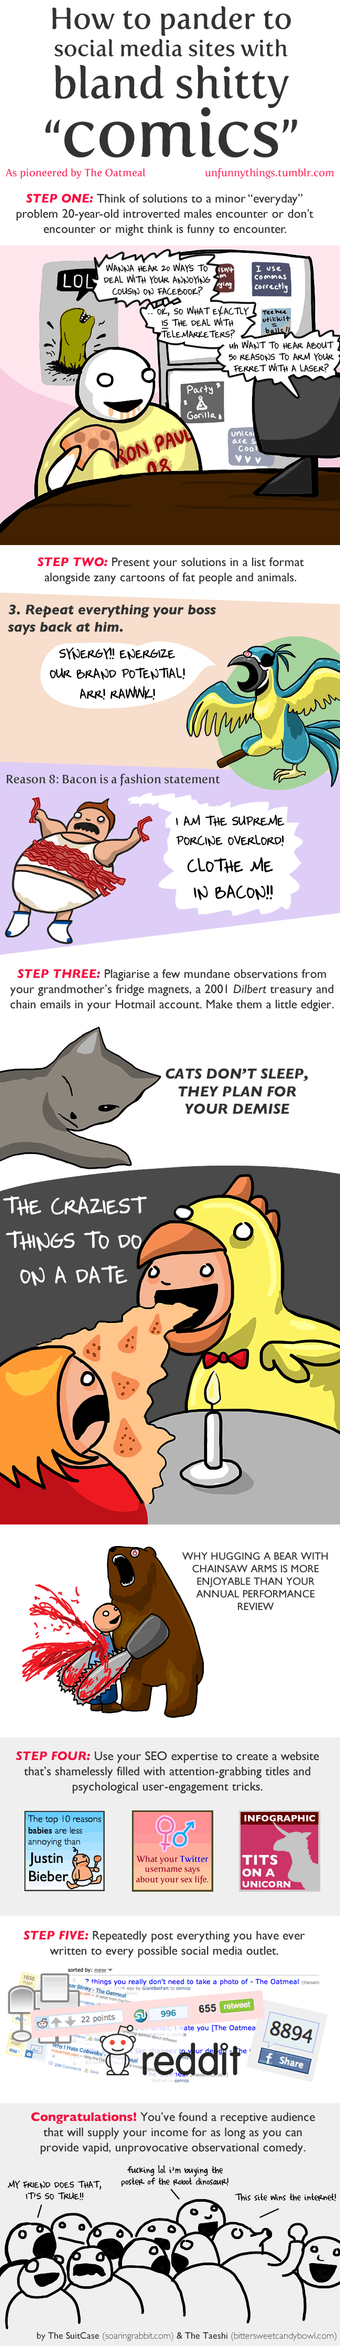 How to Pander Like The Oatmeal by taeshilh